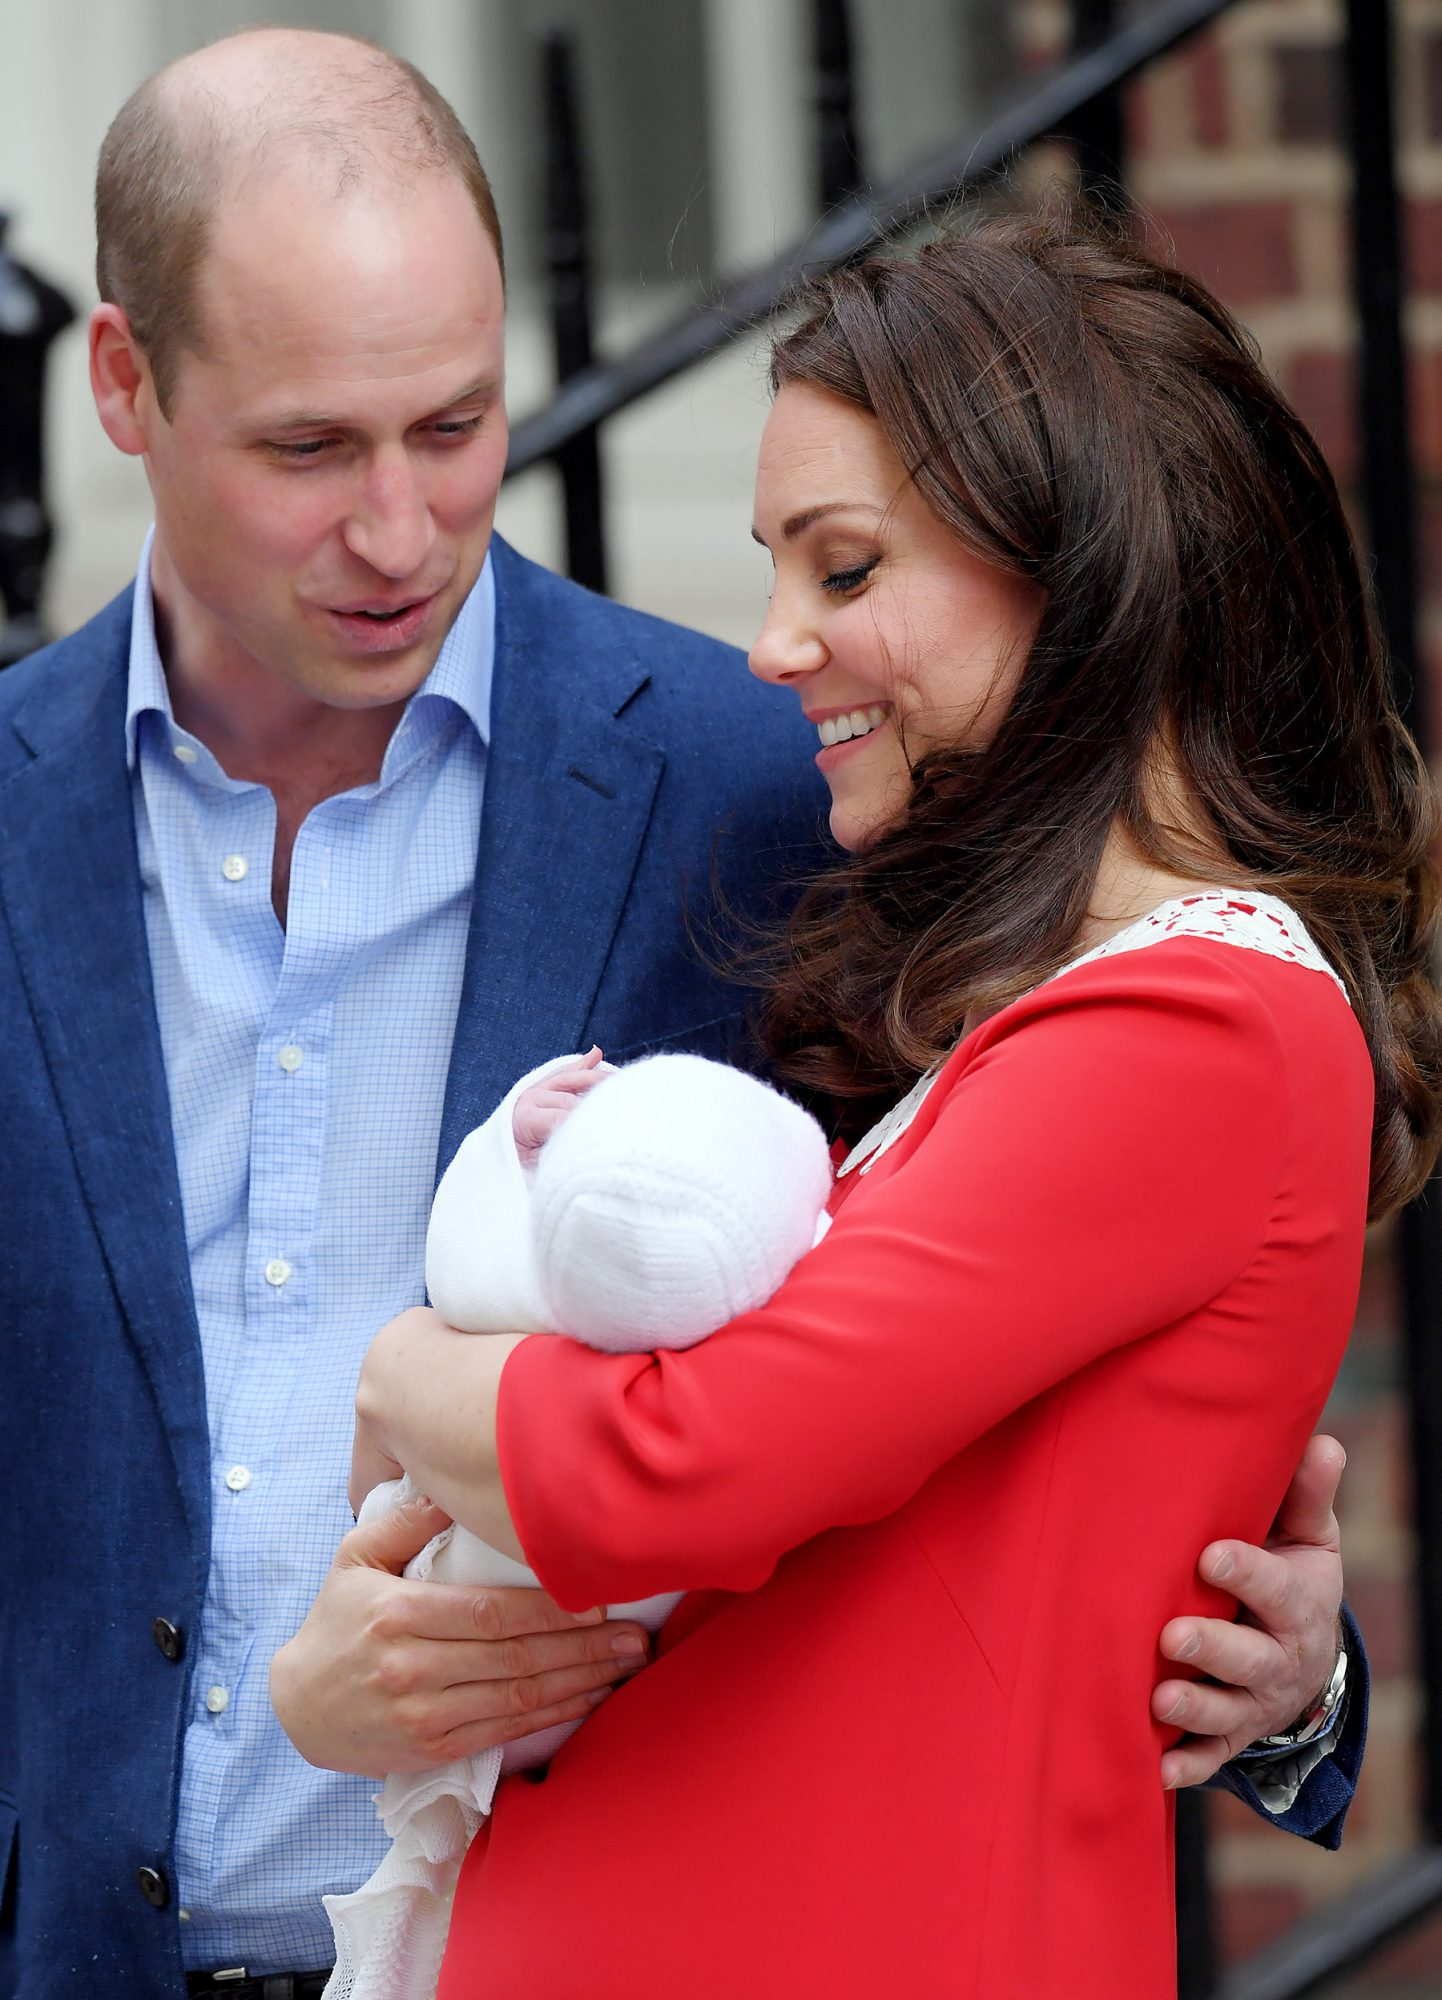 Prince William and Kate Middleton Celebrate Their Anniversary for the First Time as a Family of 5 catherine-28